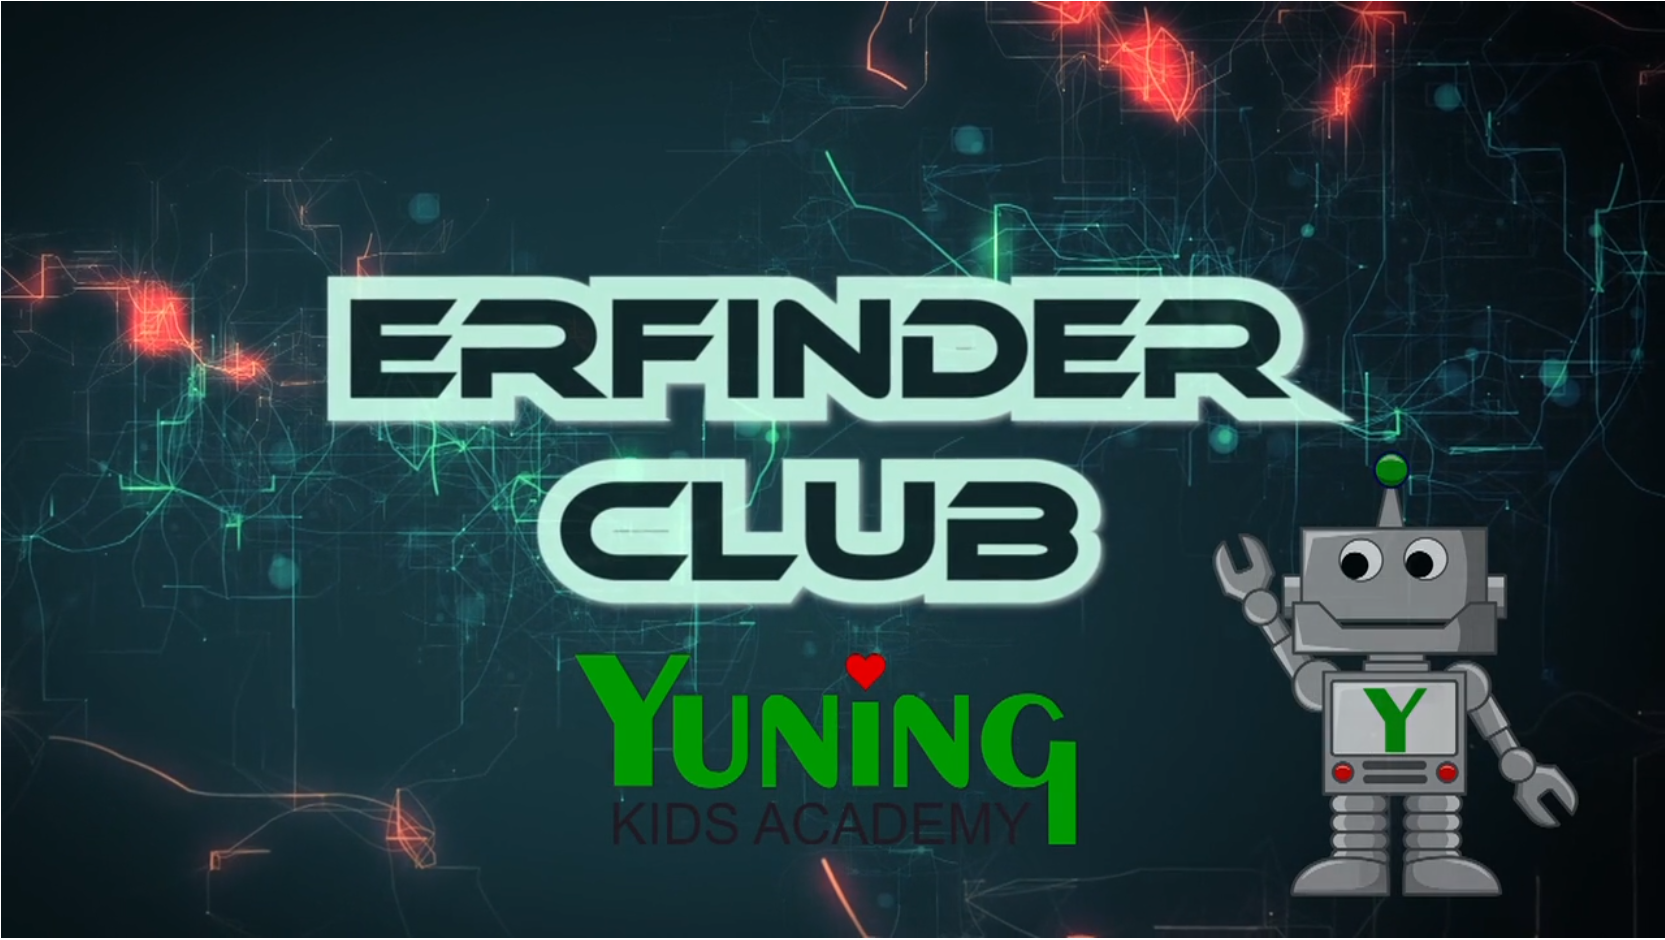 YUNING Robotik Kids Club - Erfinder Club